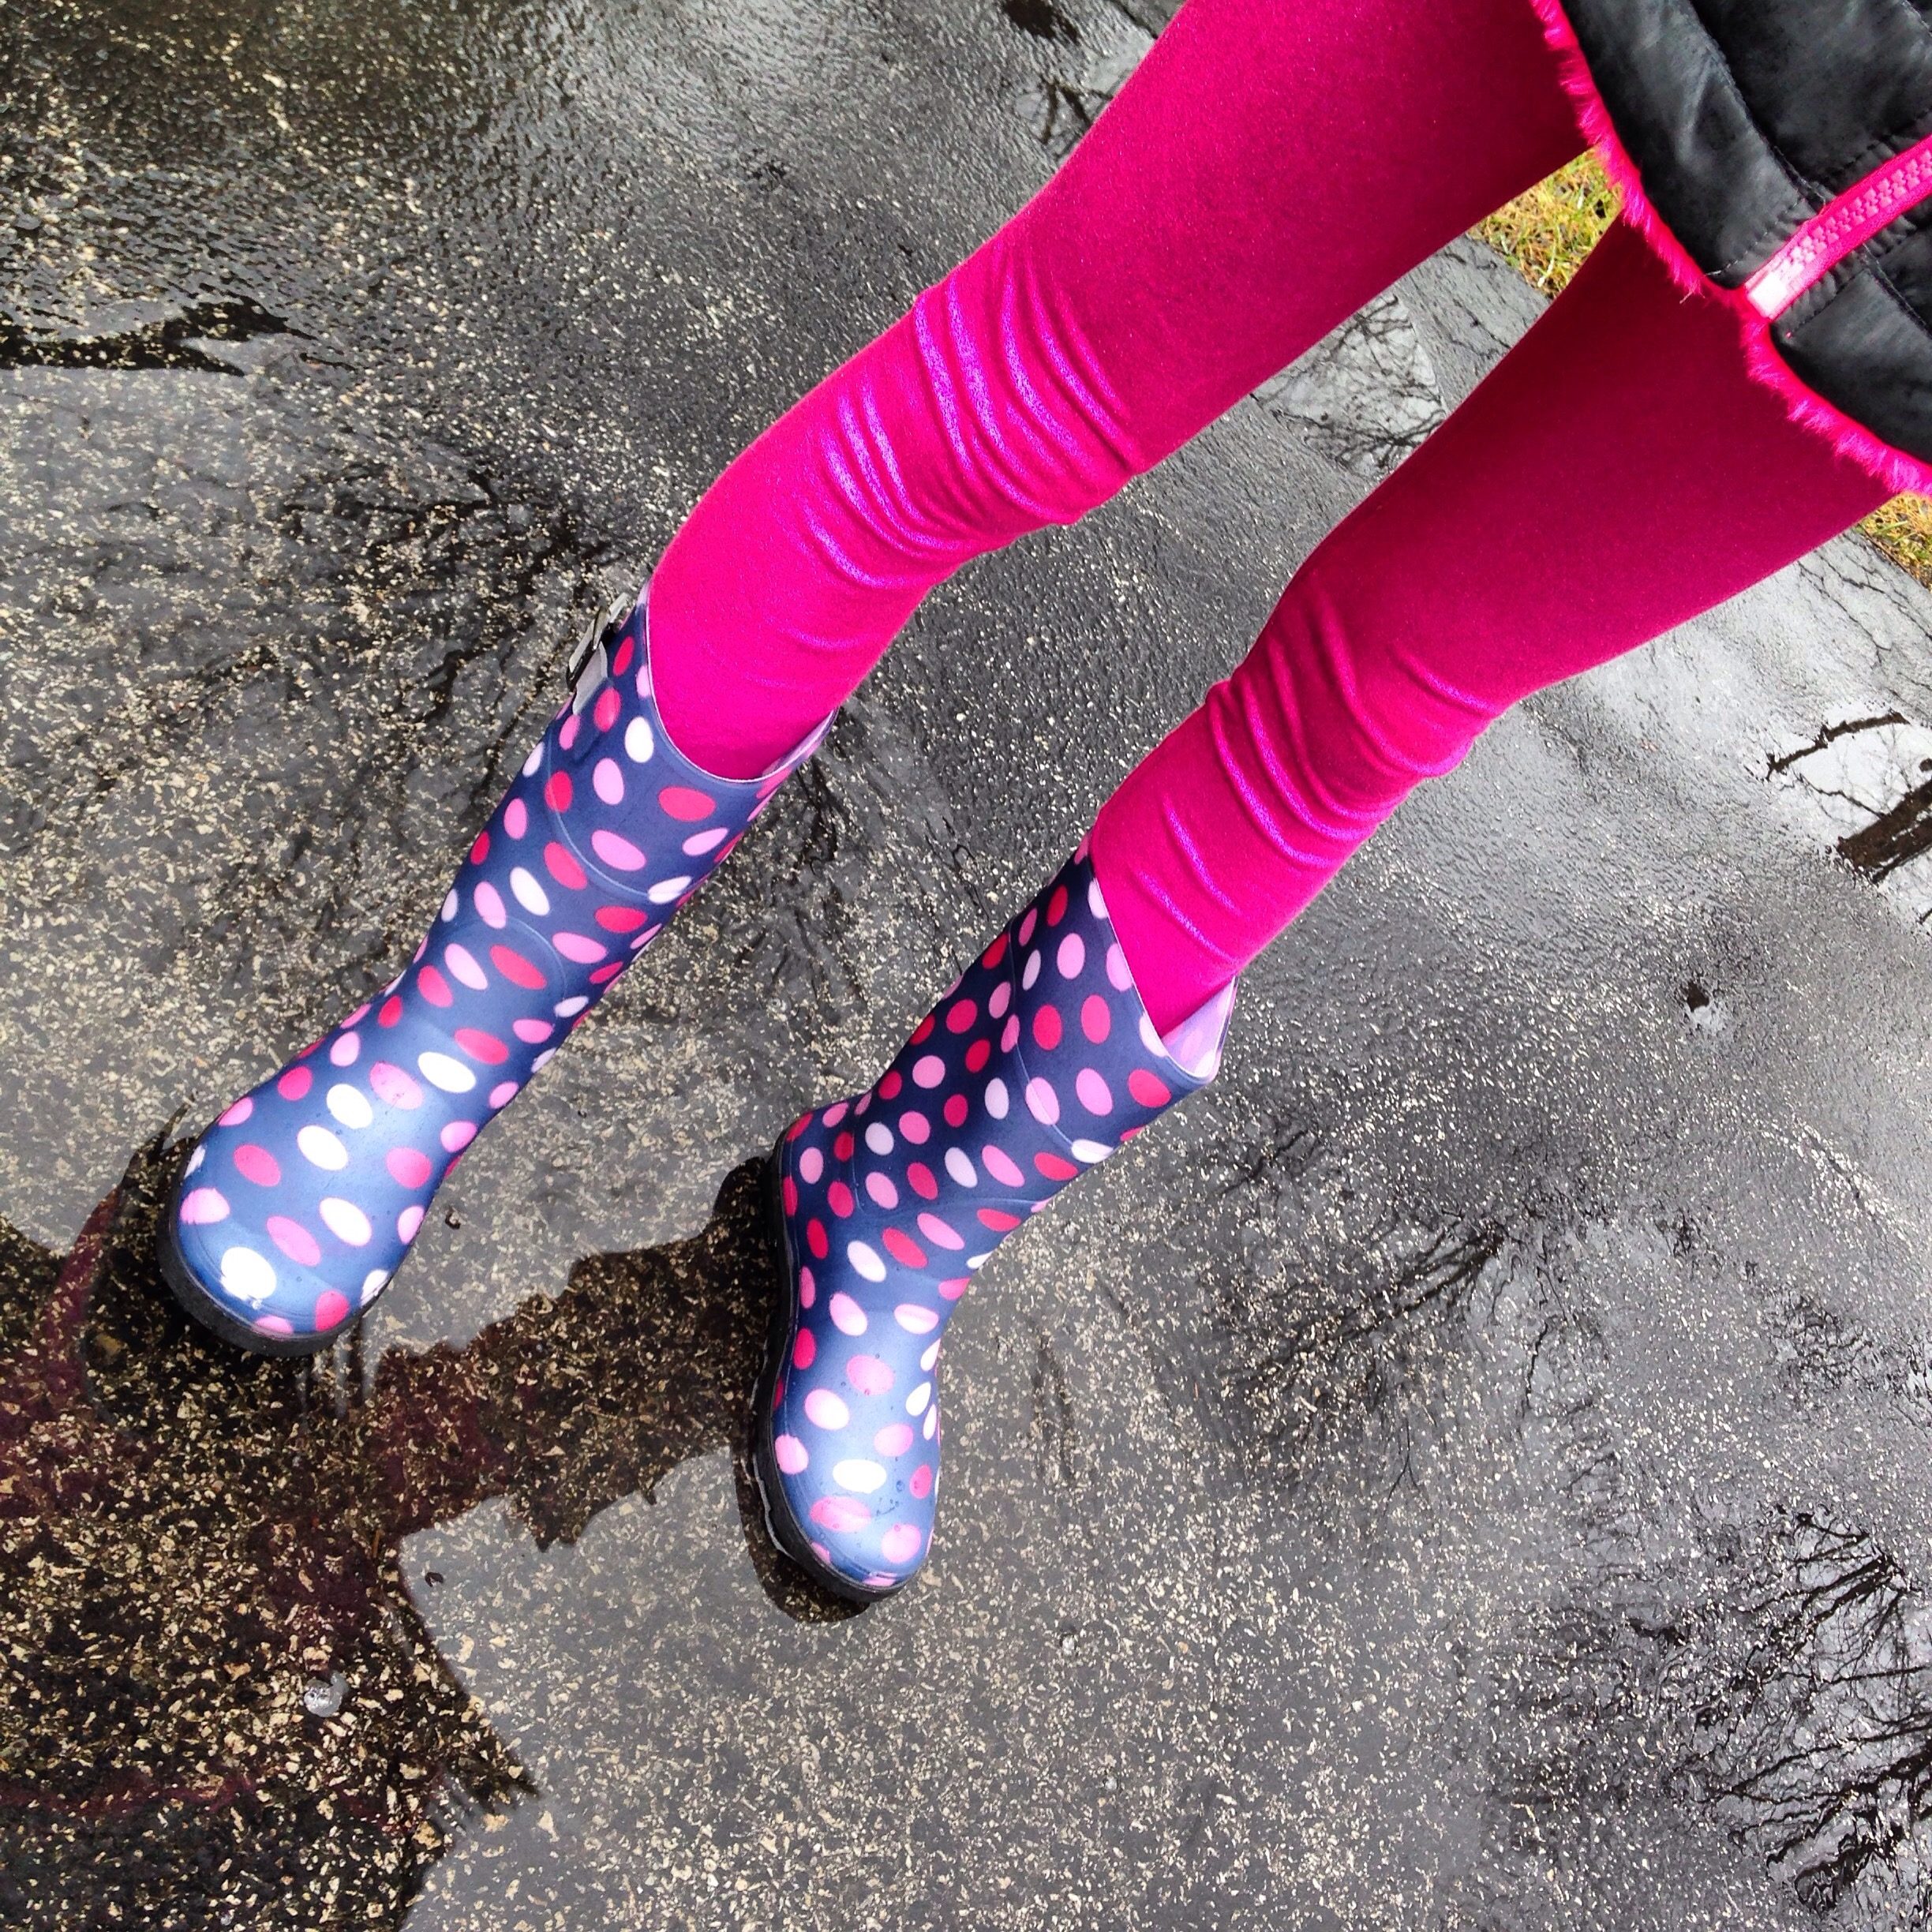 Polka Dot Rain Boots from Kamik